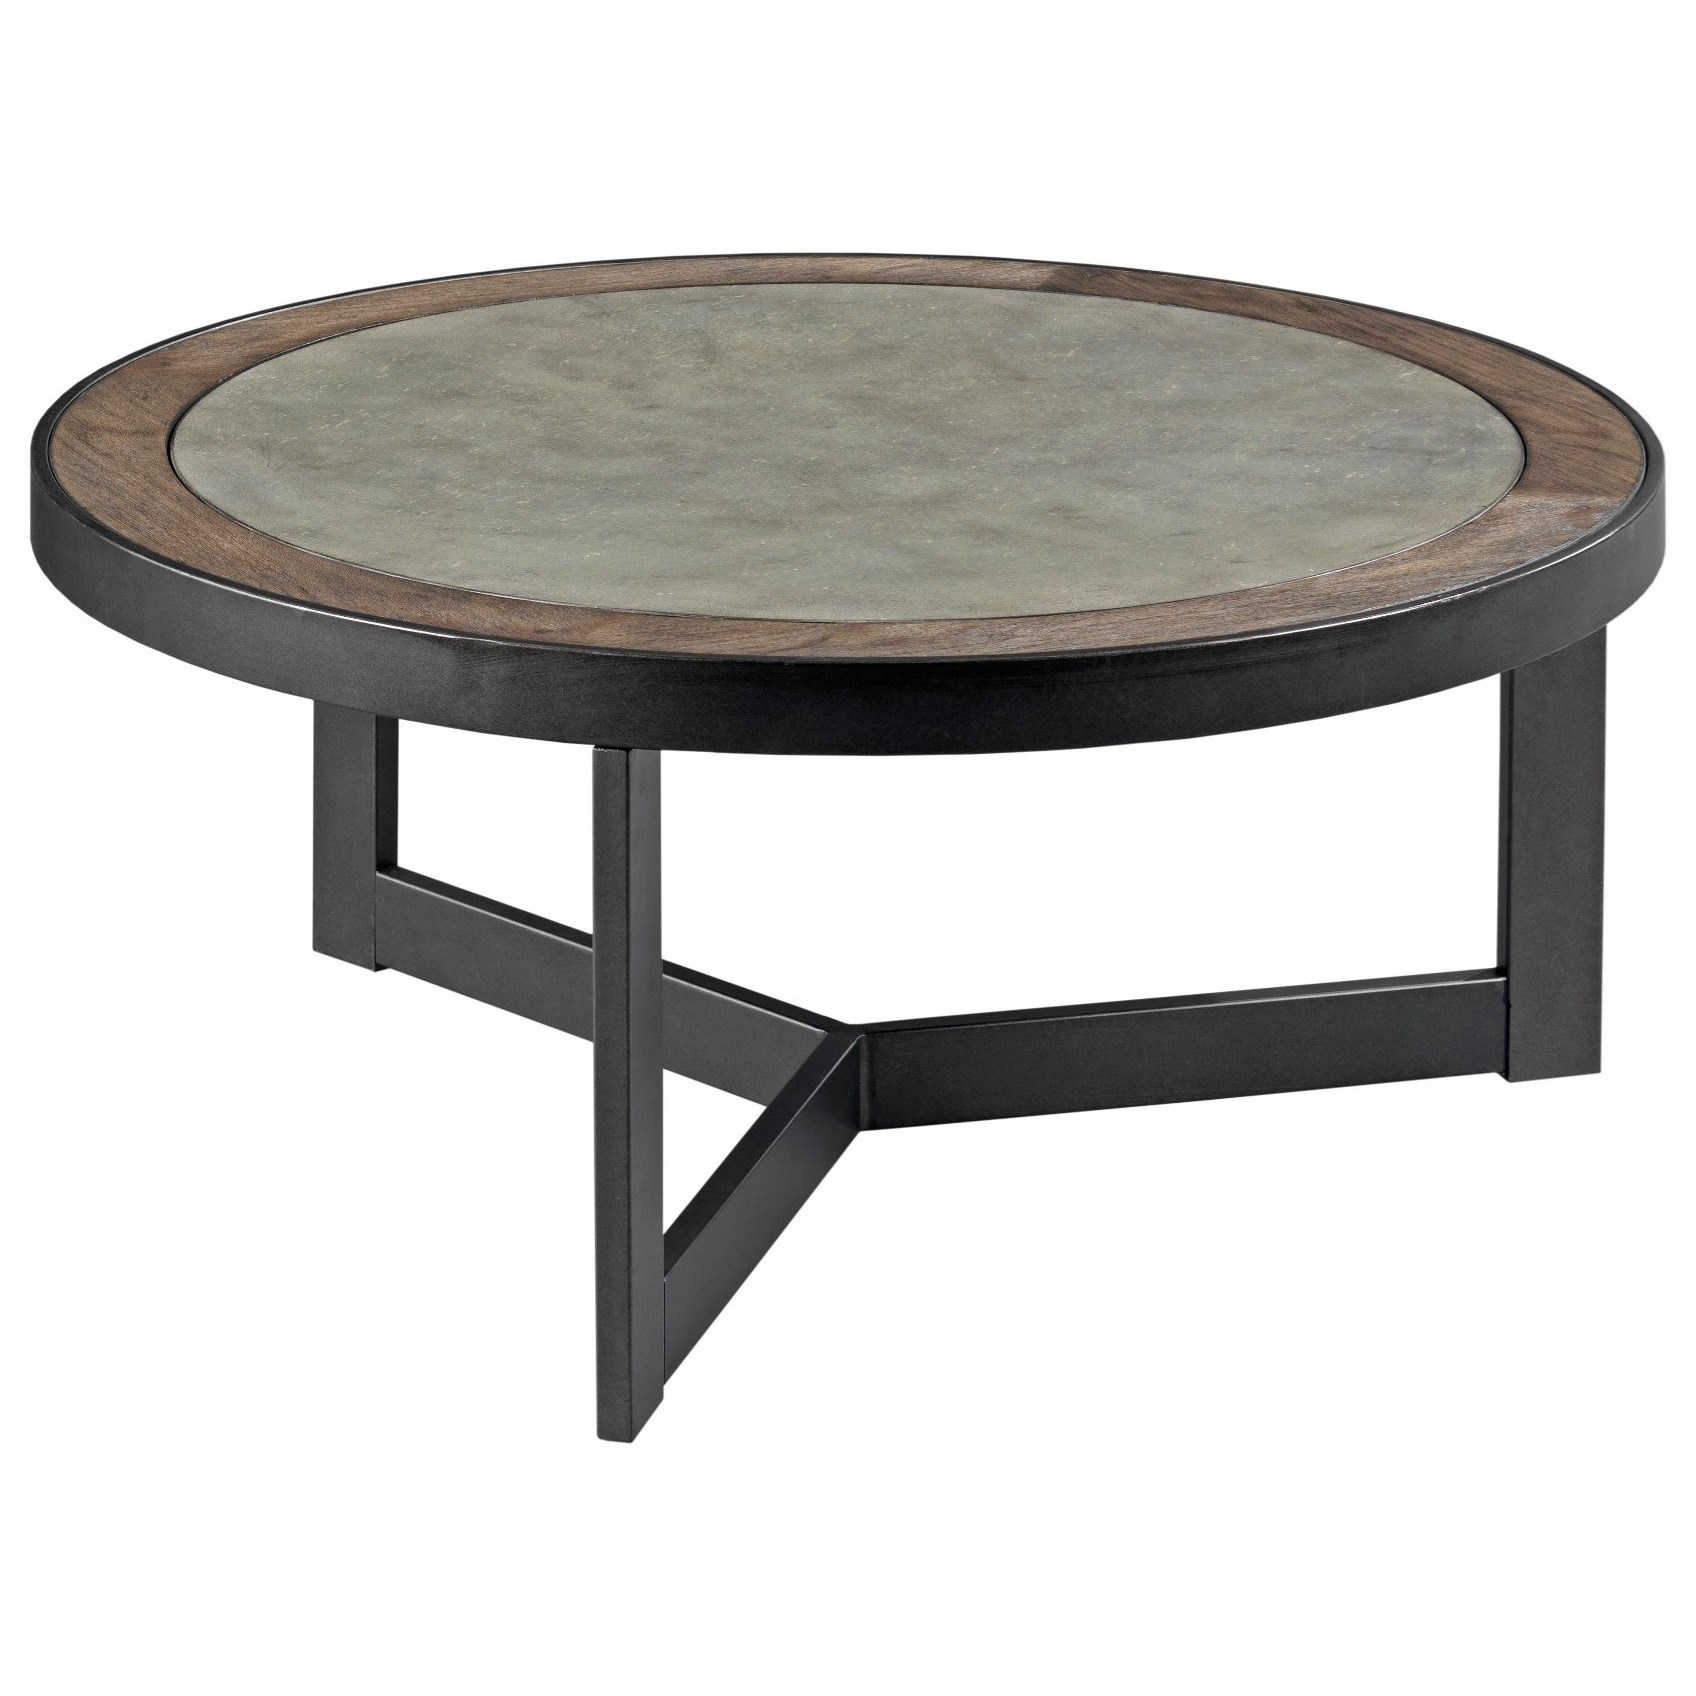 Graystone Round Cocktail Table by England at Westrich Furniture & Appliances